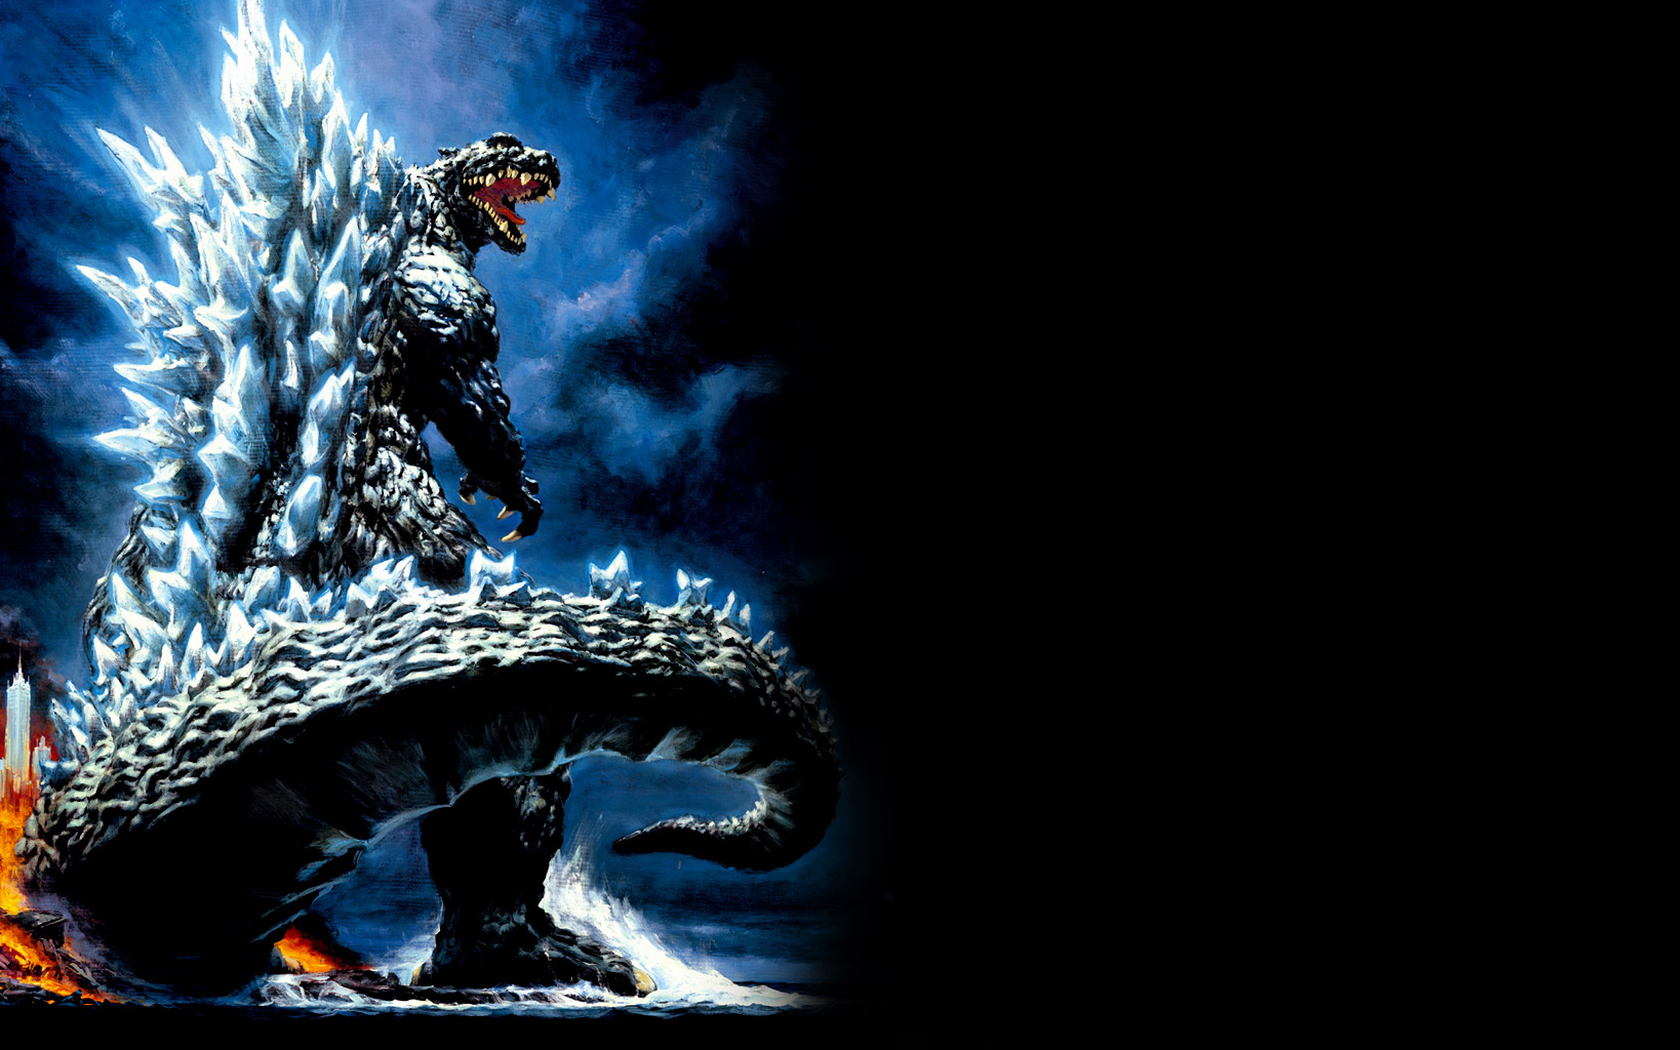 Godzilla Computer Wallpapers Desktop Backgrounds 1680x1050